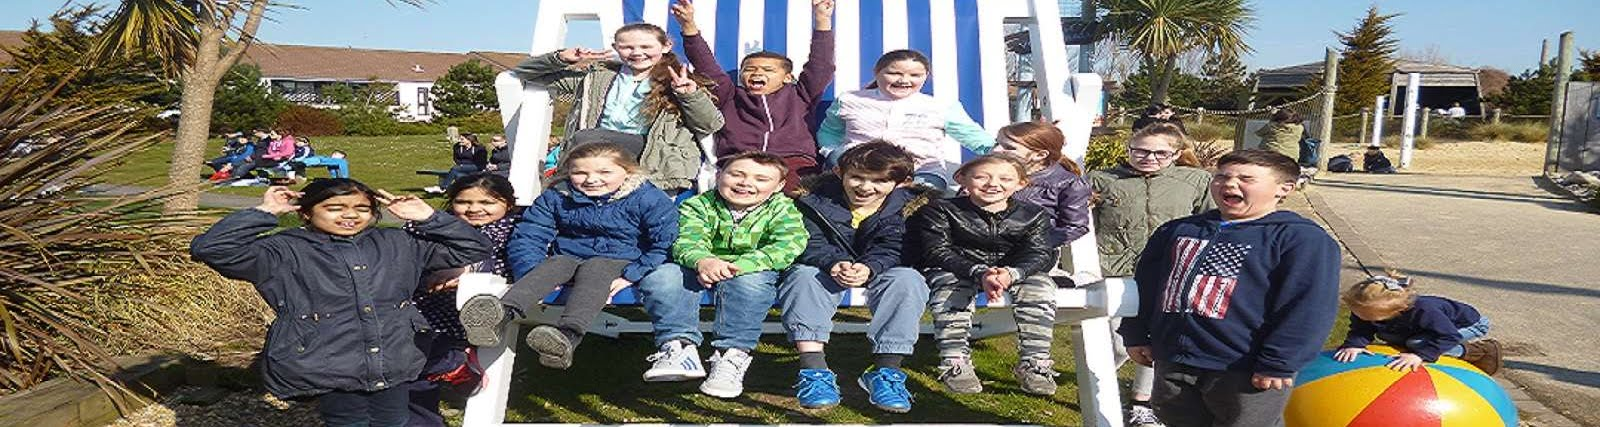 Young Carers on a trip to Butlins